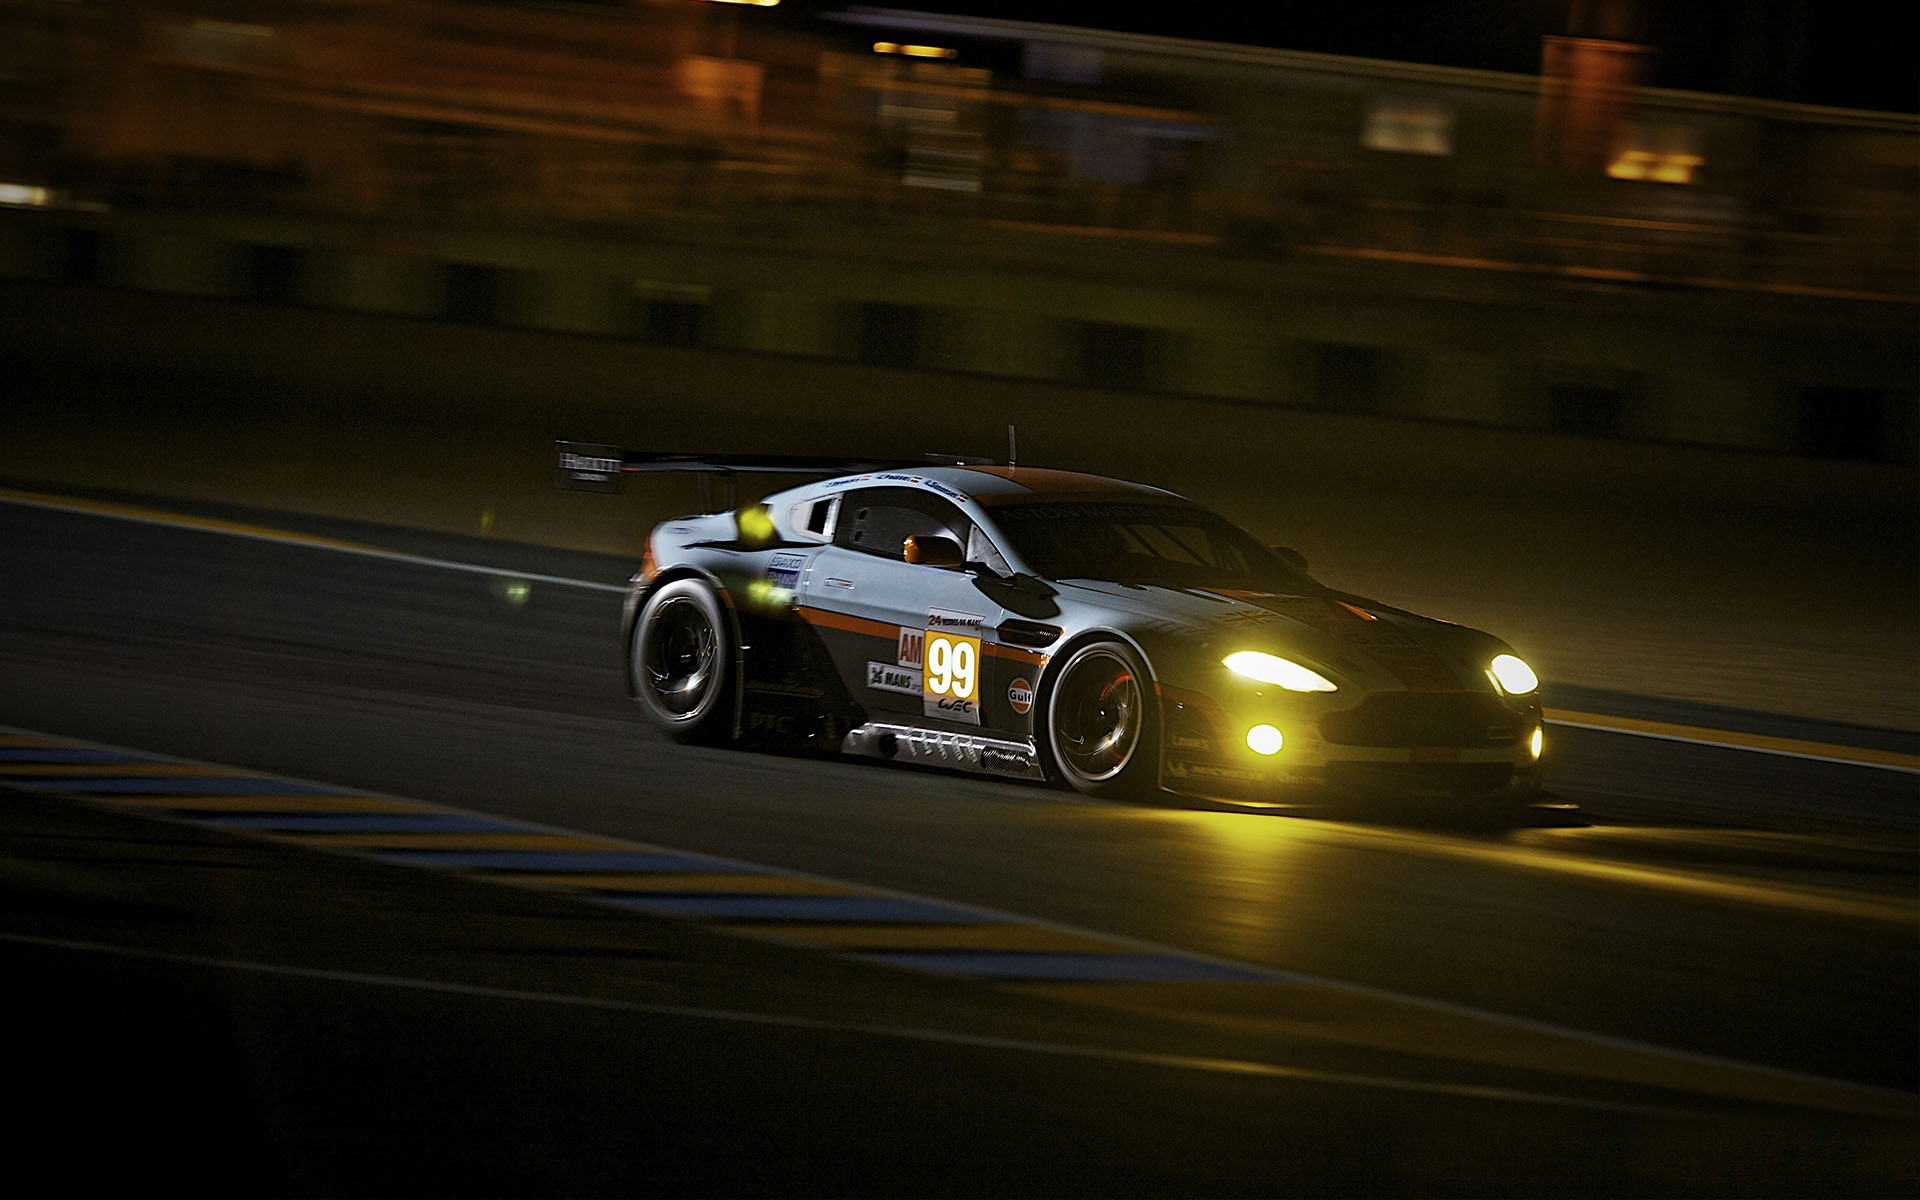 Aston Martin Vantage Night Race Wallpaper Hd Car